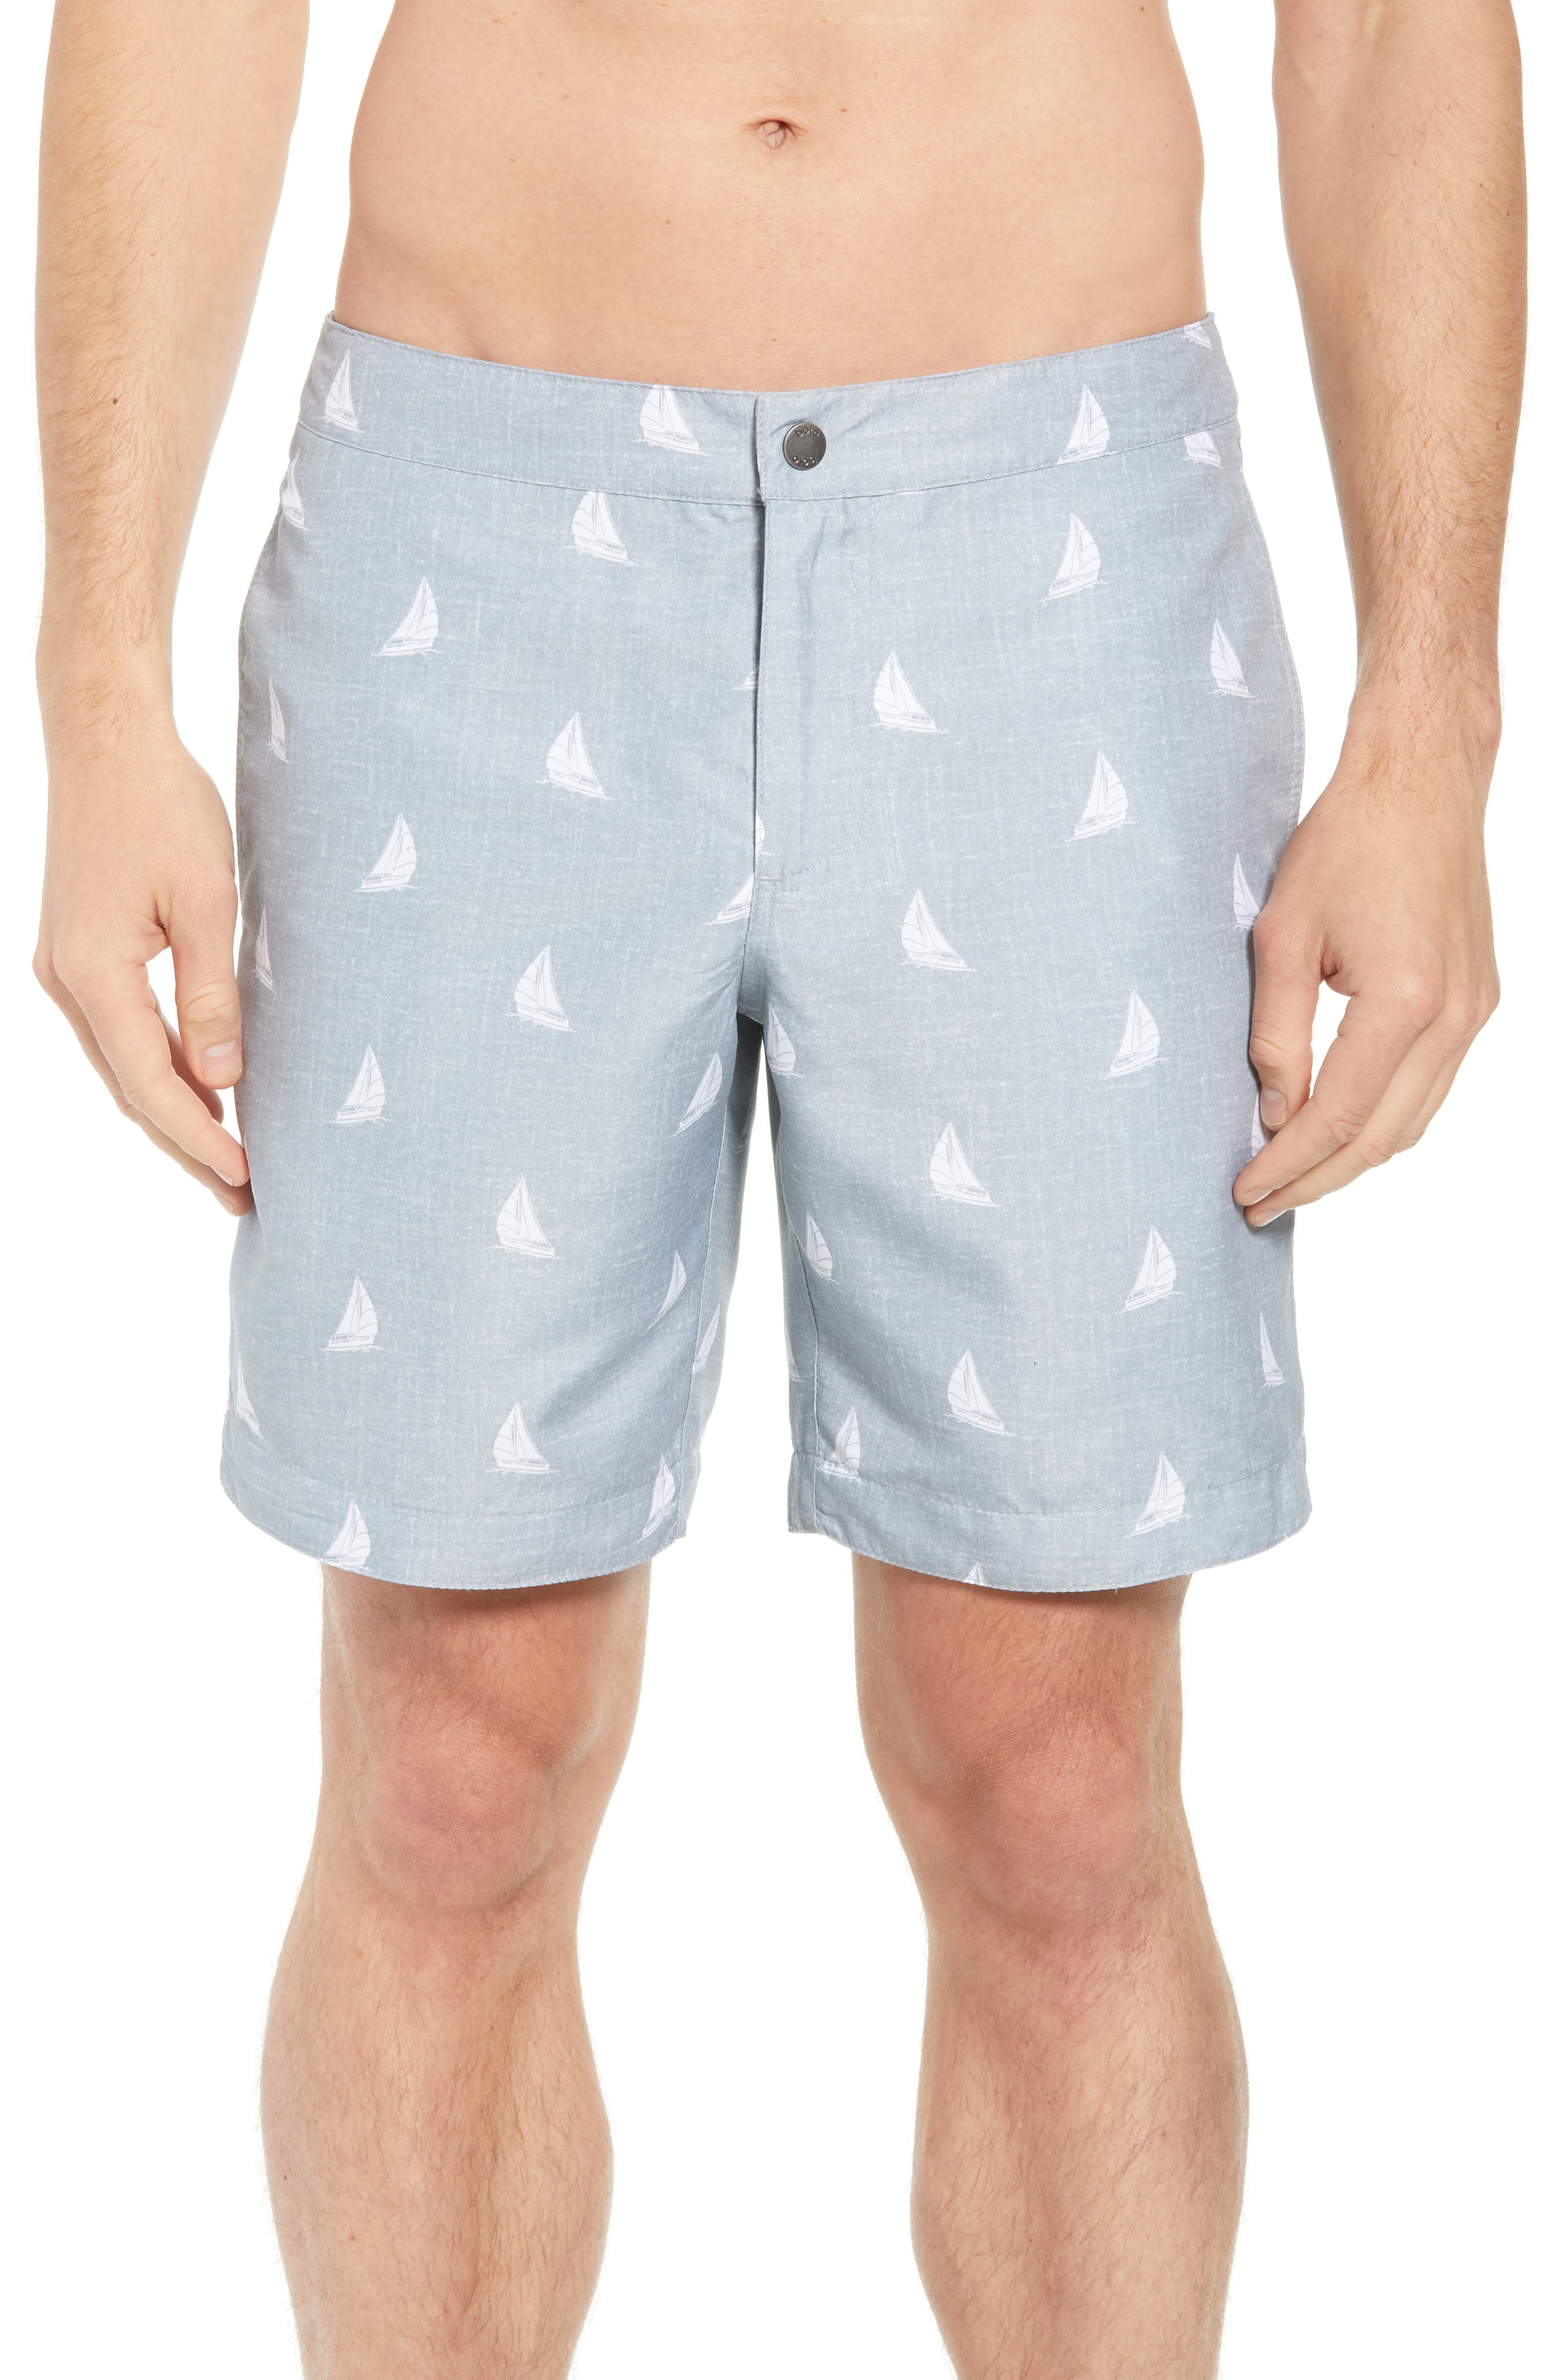 Aruba Slim Fit Swim Trunks,                             Main thumbnail 1, color,                             HEATHERED GREY SAILBOATS